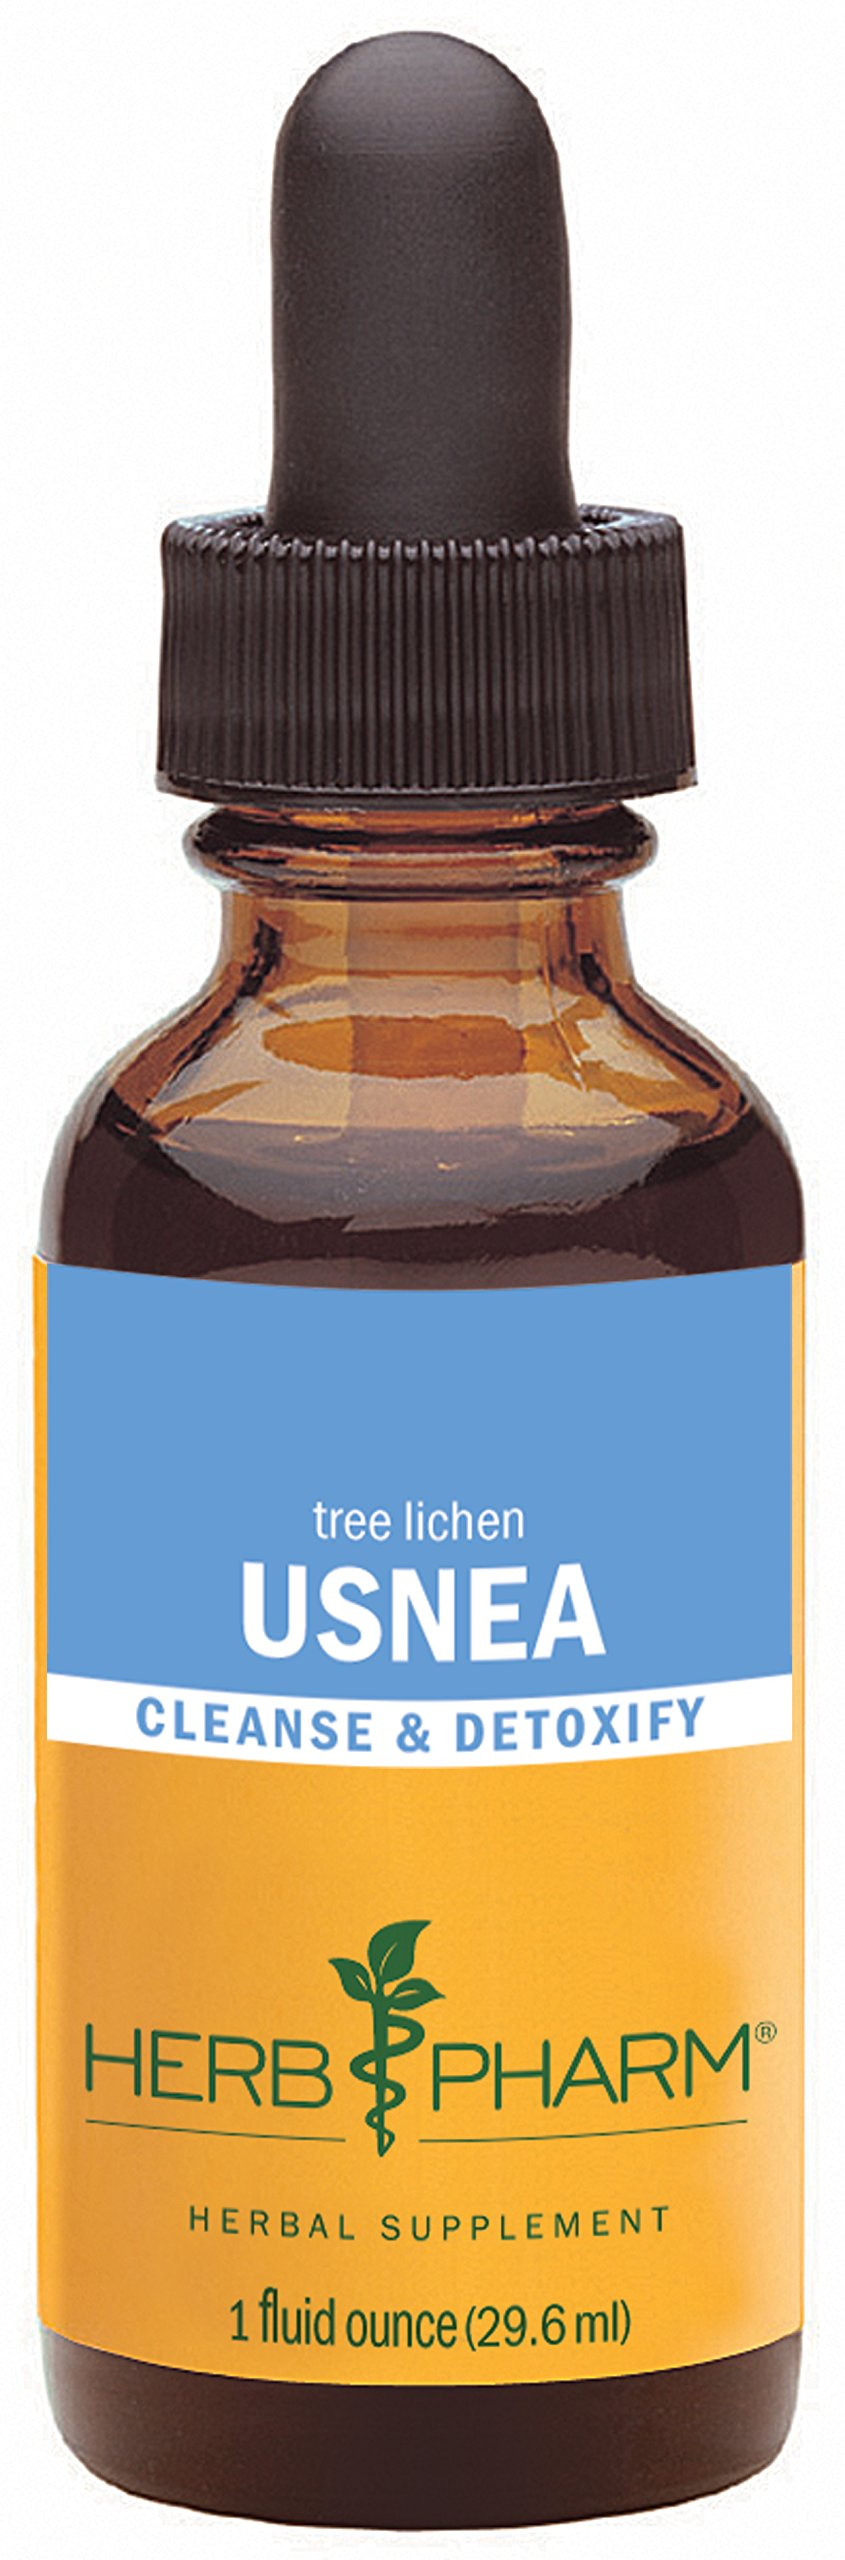 Herb Pharm Usnea Extract for Cleansing and Detoxification - 1 Ounce